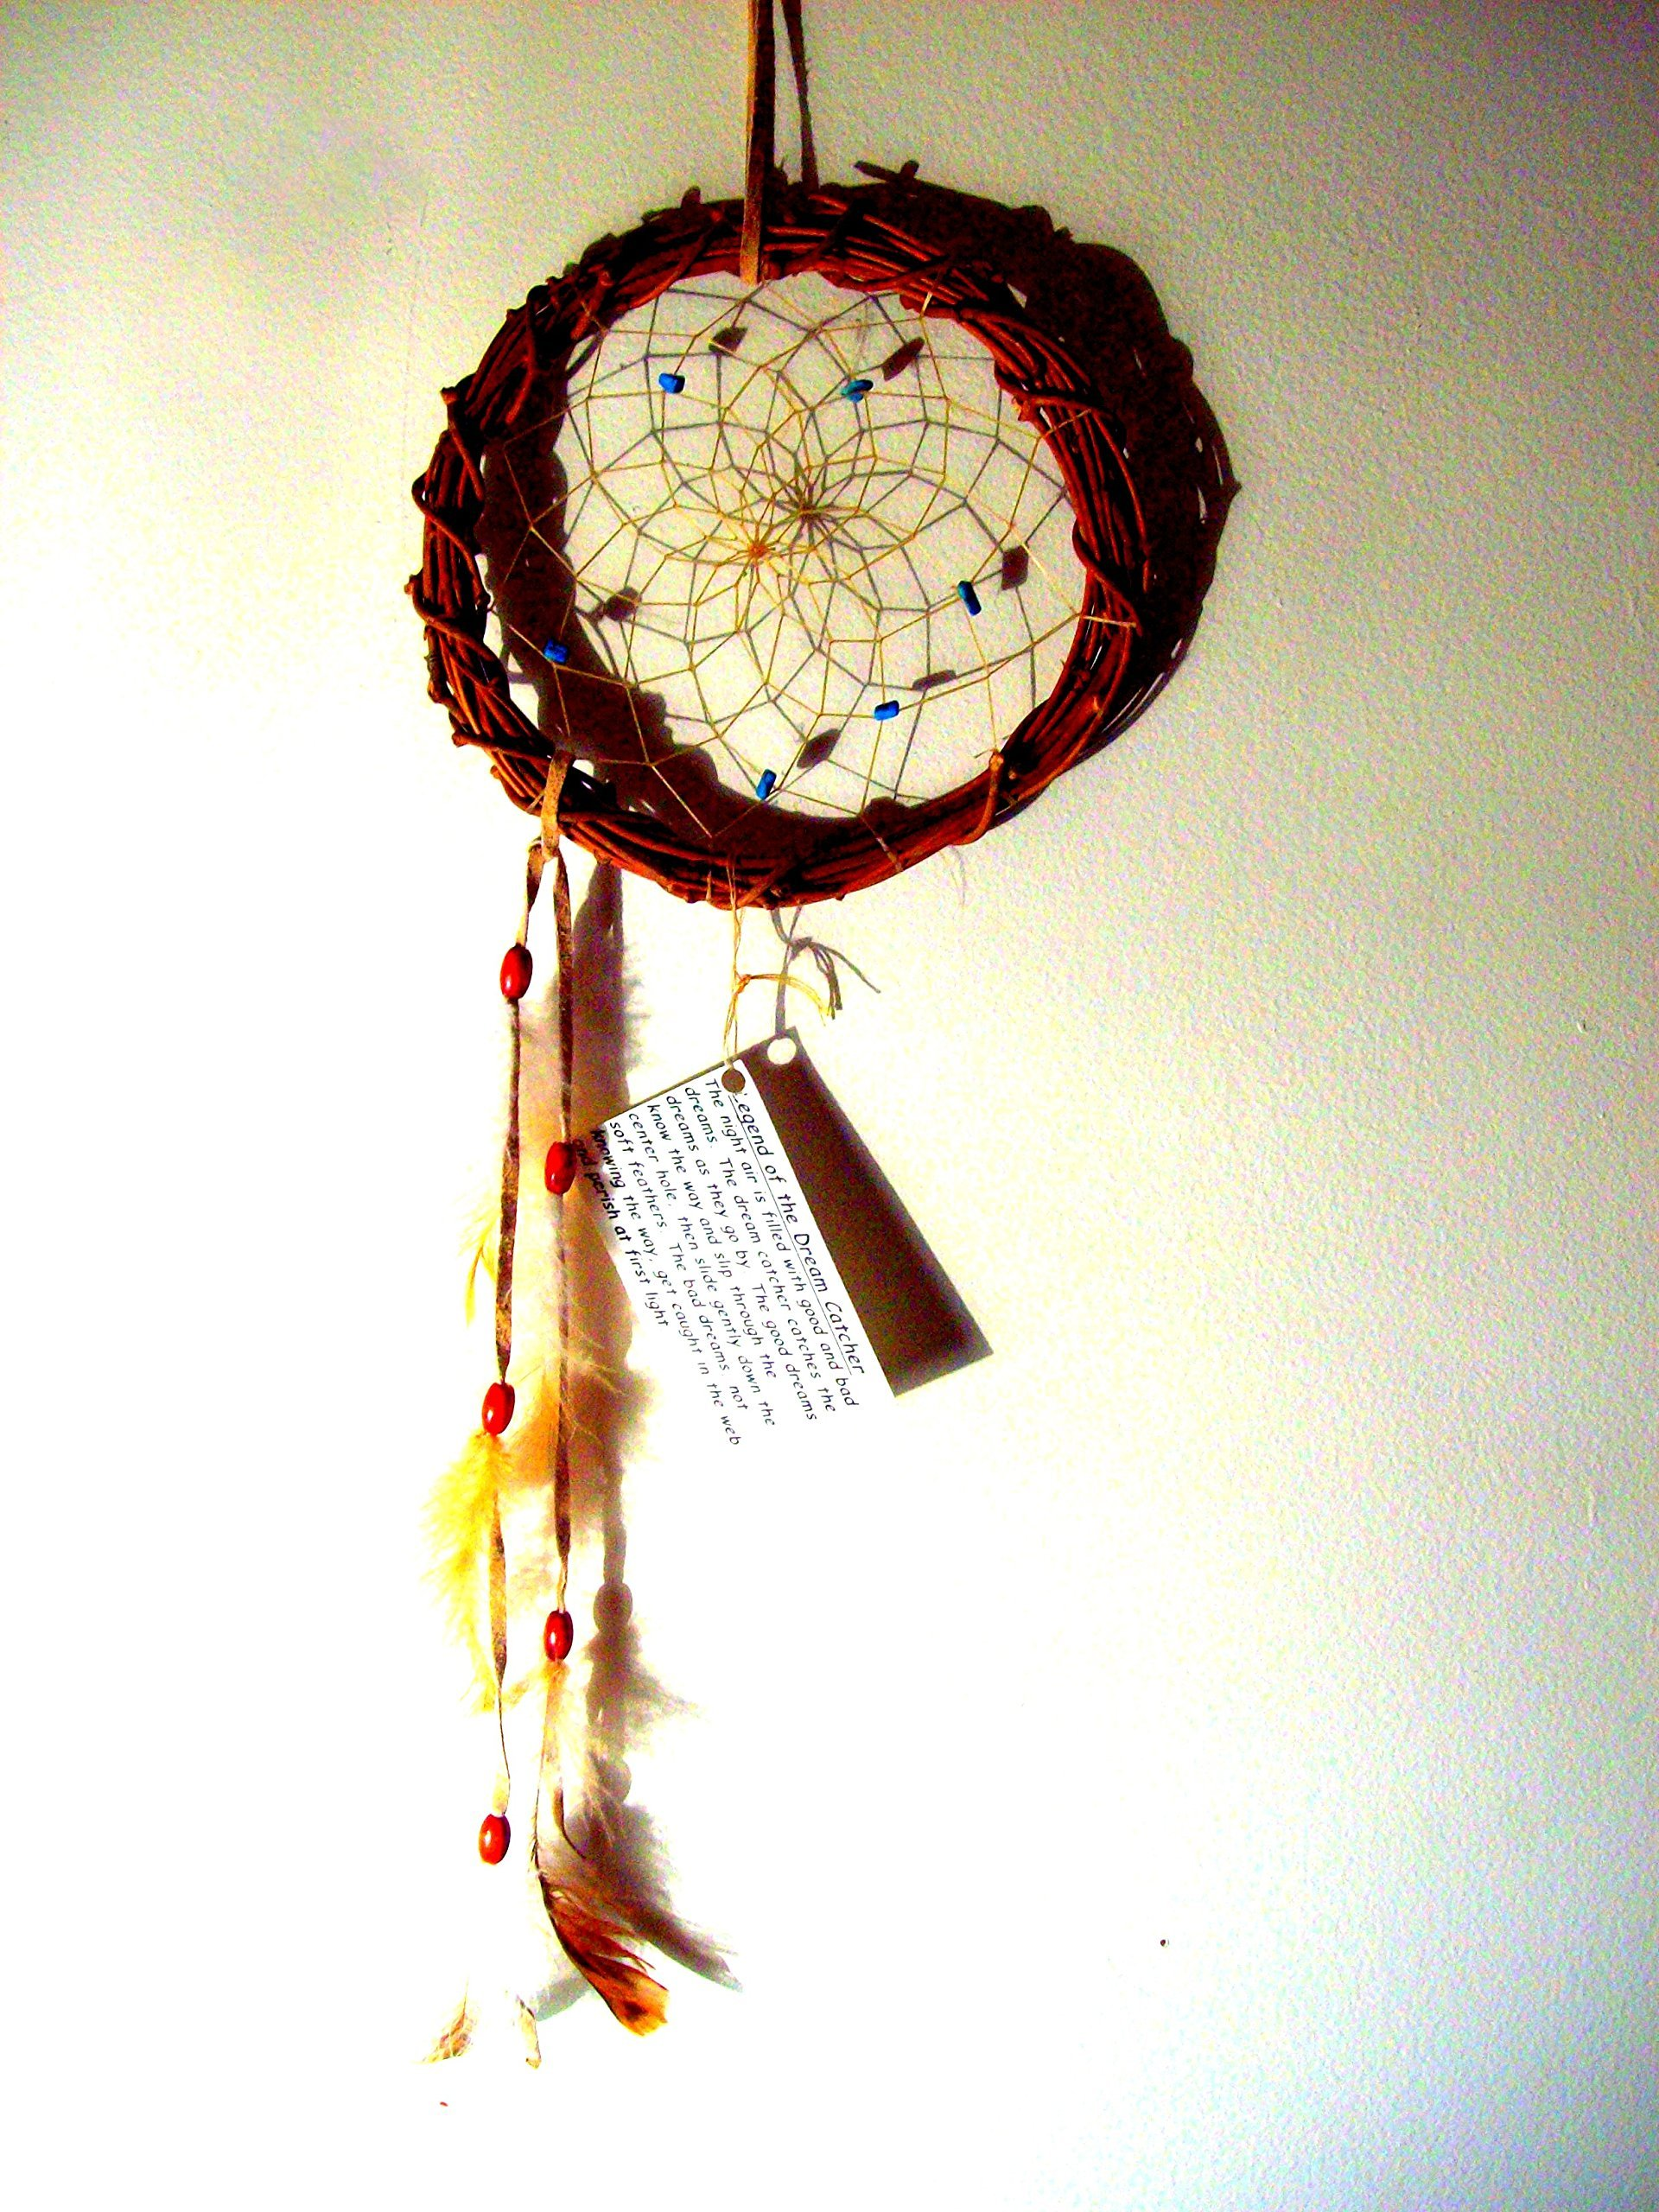 NATIVE MADE DREAMCATCHER with Turquoise, Dream catcher, Medium size wallhanging dreamcatcher, Native American, Boho, southwest art,